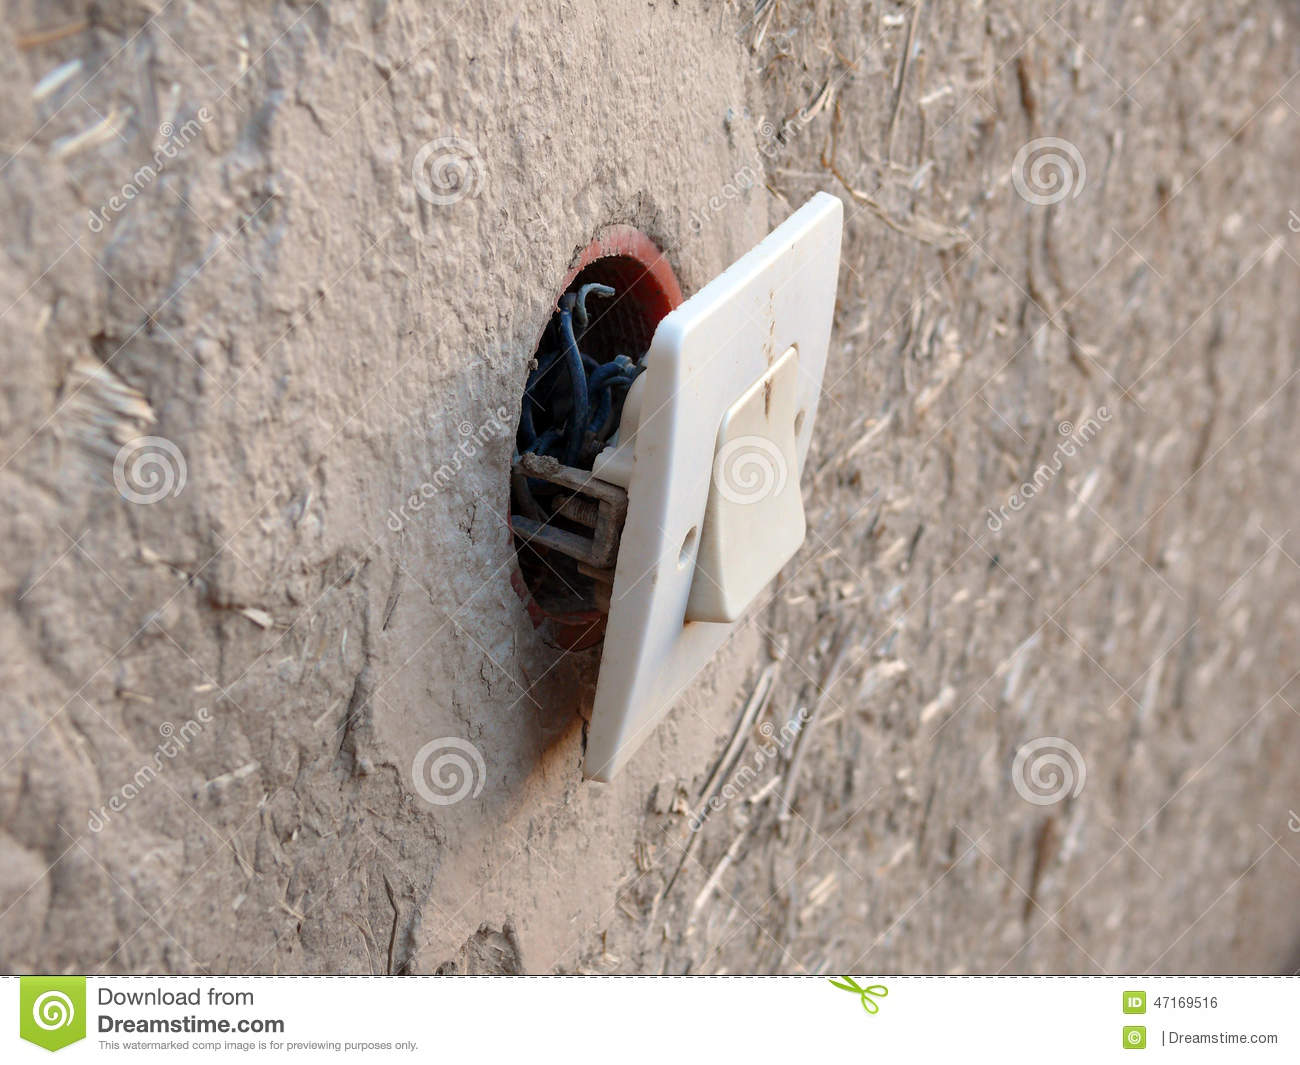 bad electrical wiring in rural moroccan town